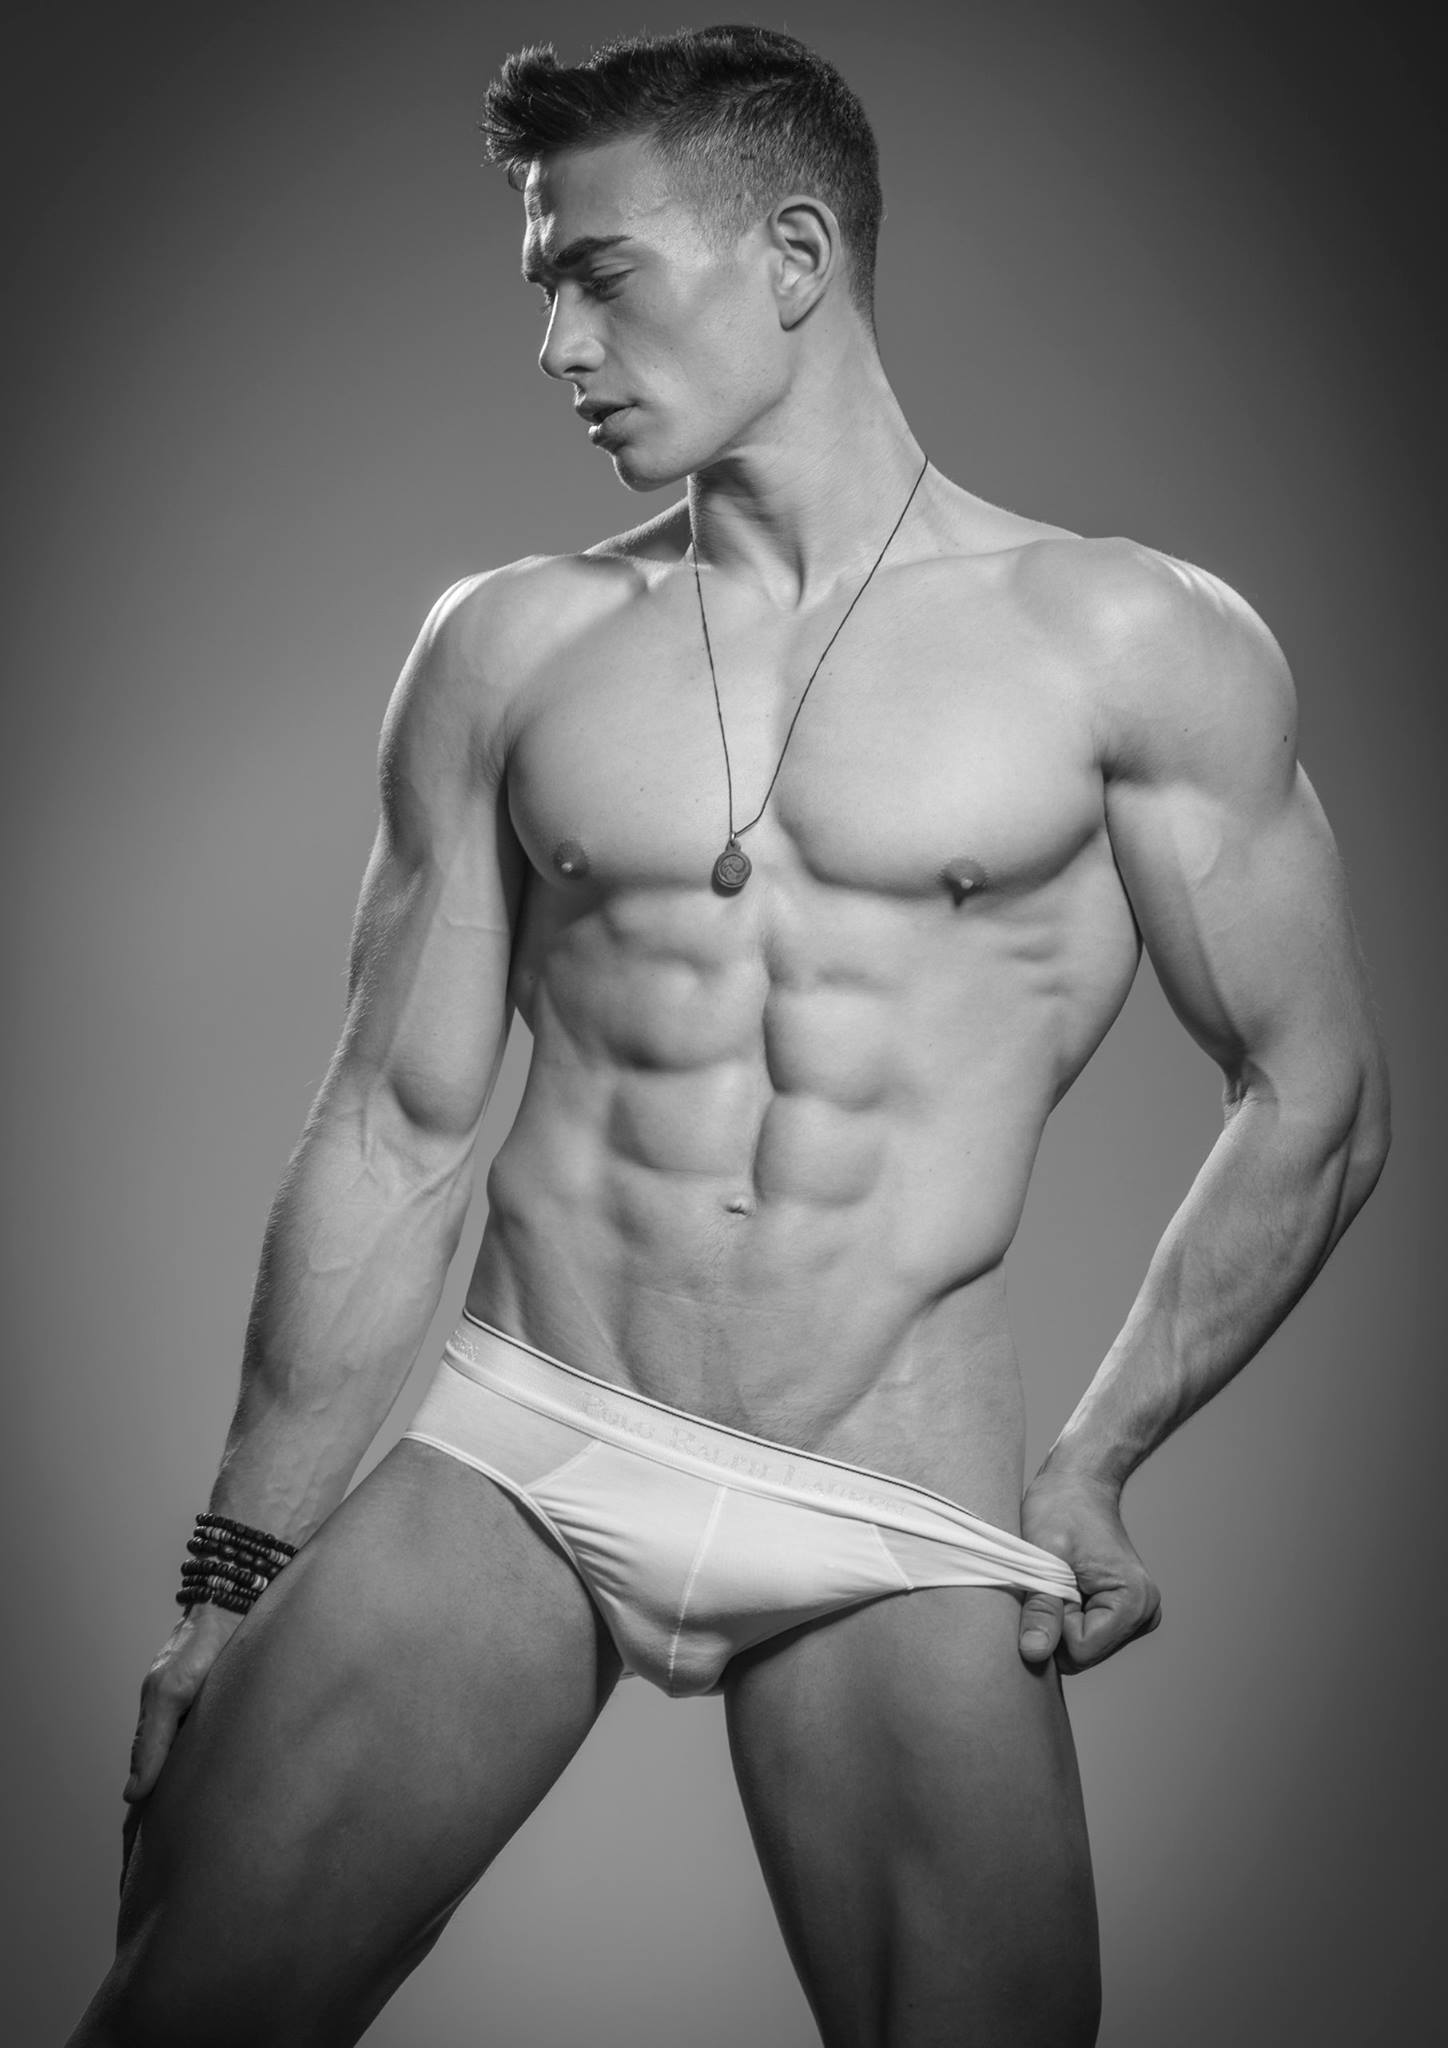 Jose Murcia by Paul Van Der Linde